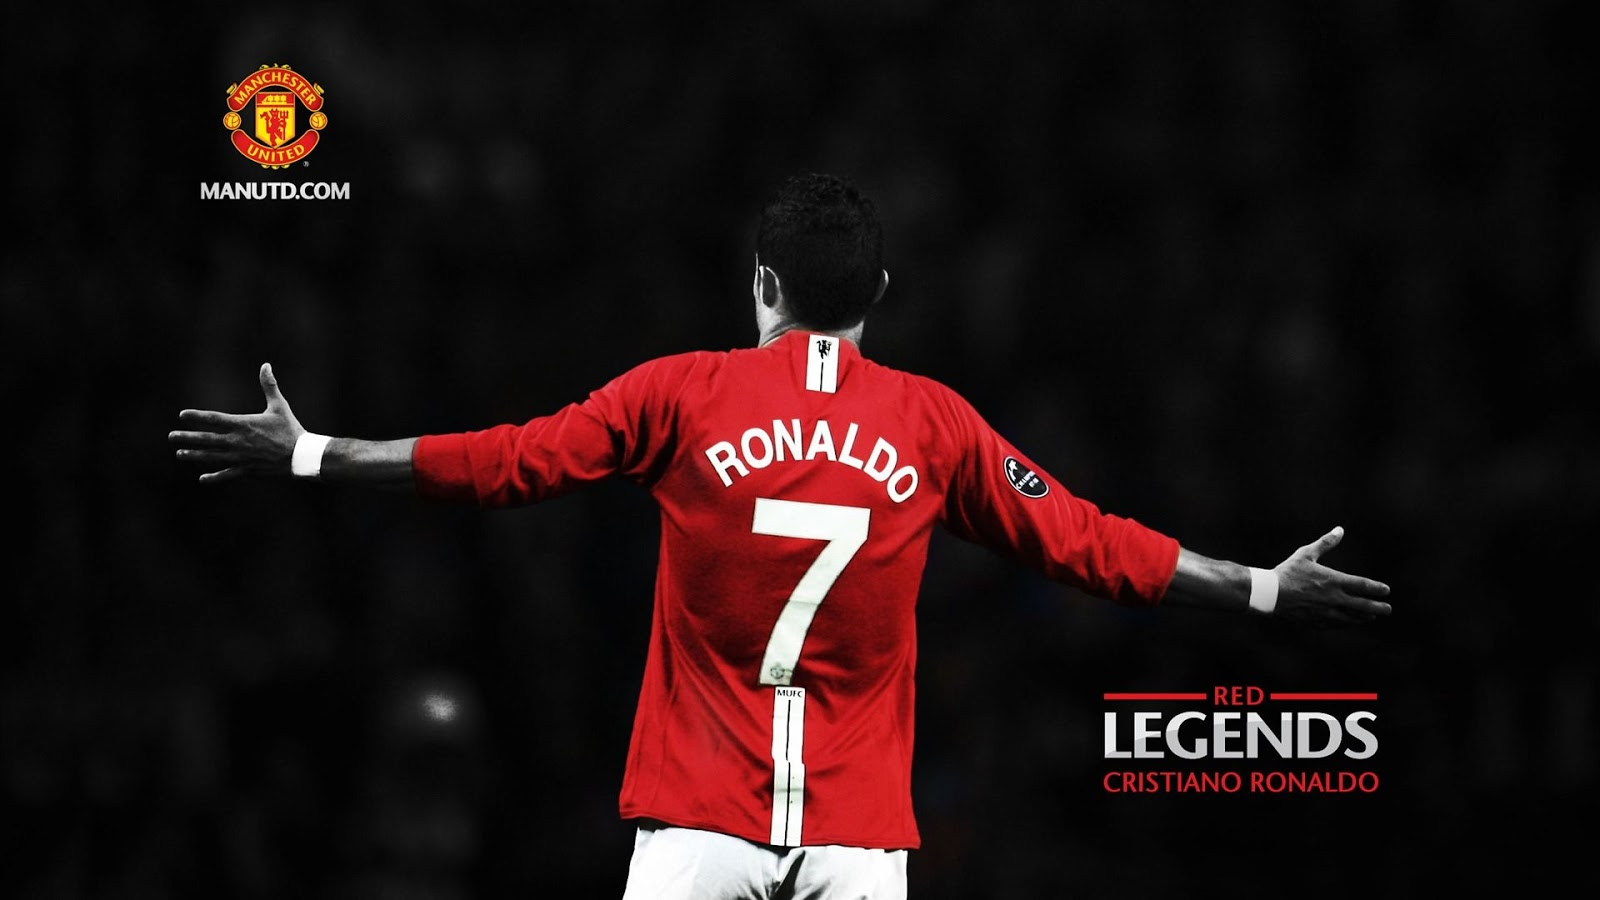 Manchester United The No 7 Legends